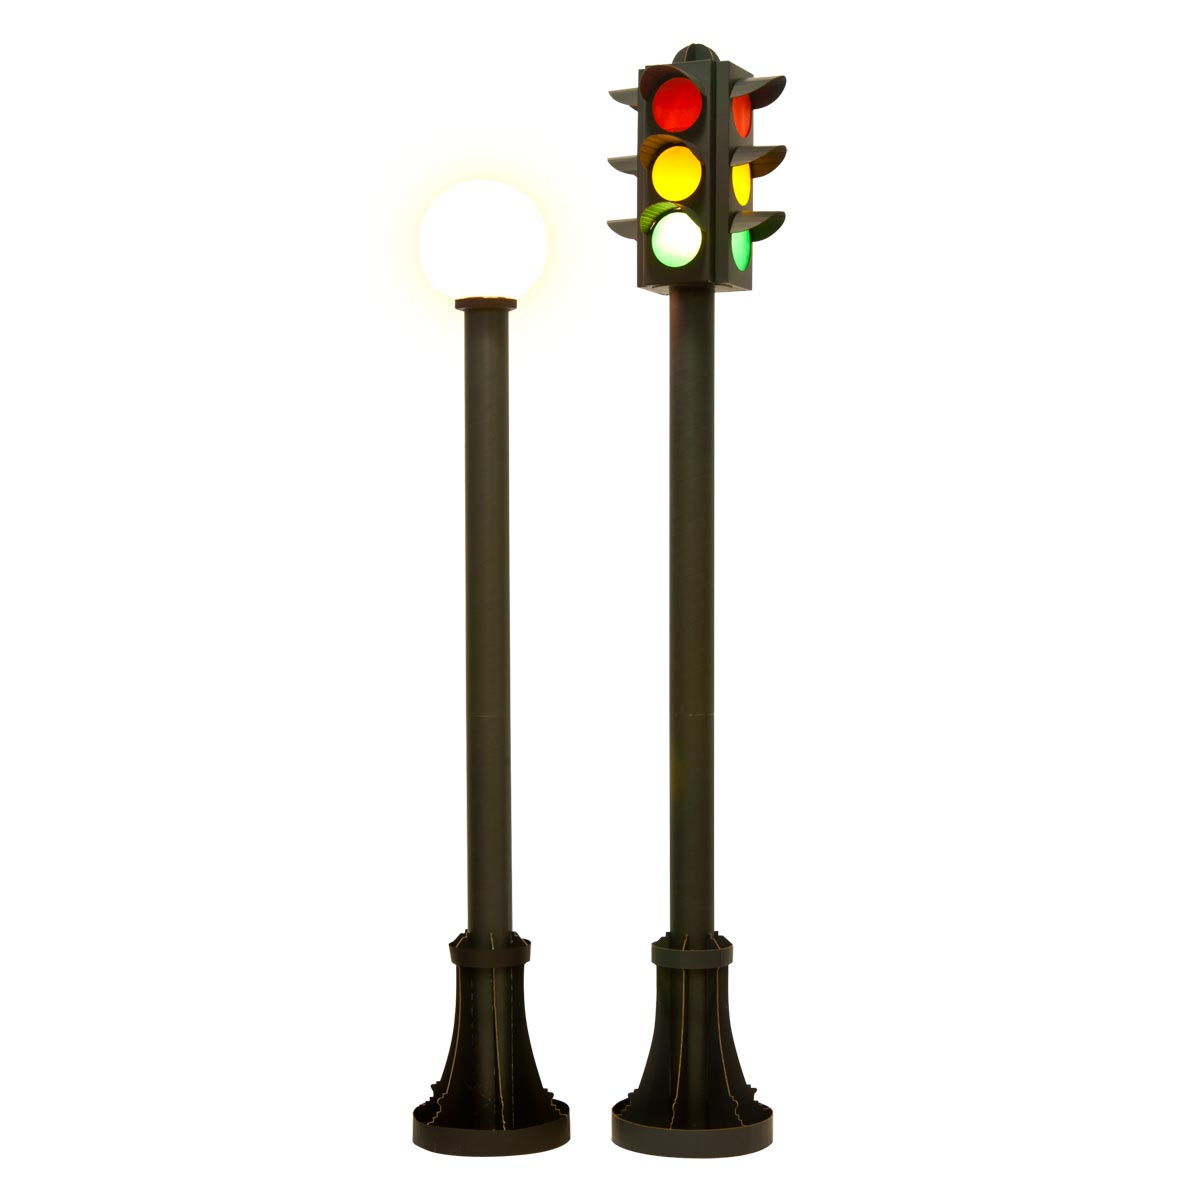 Neon Lights Are Bright Streetlight and Stoplight Kit